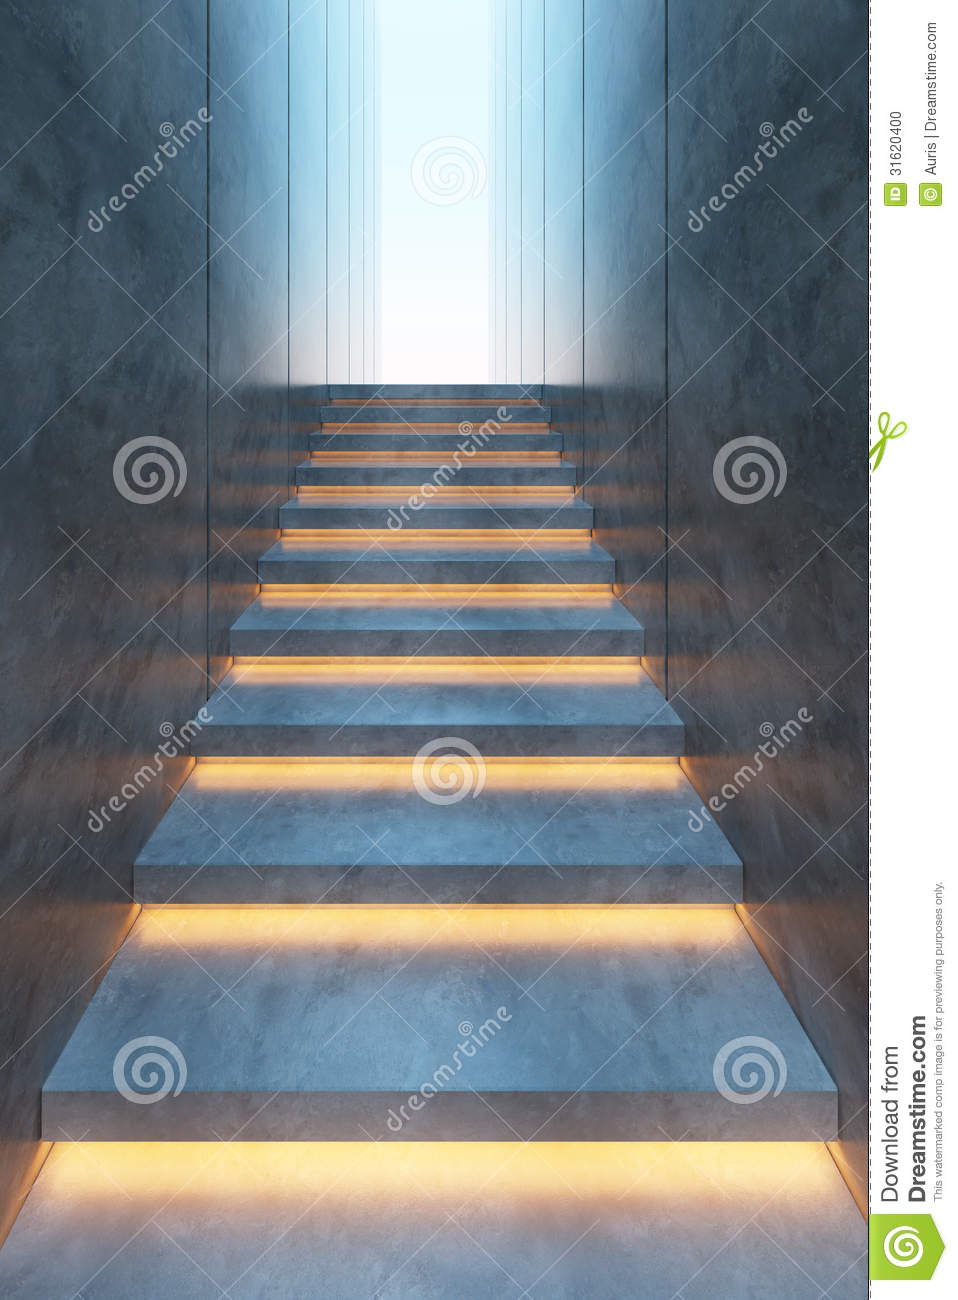 Lighting Basement Washroom Stairs: Illuminated Stairs Stock Photo. Image Of Minimal, Concrete